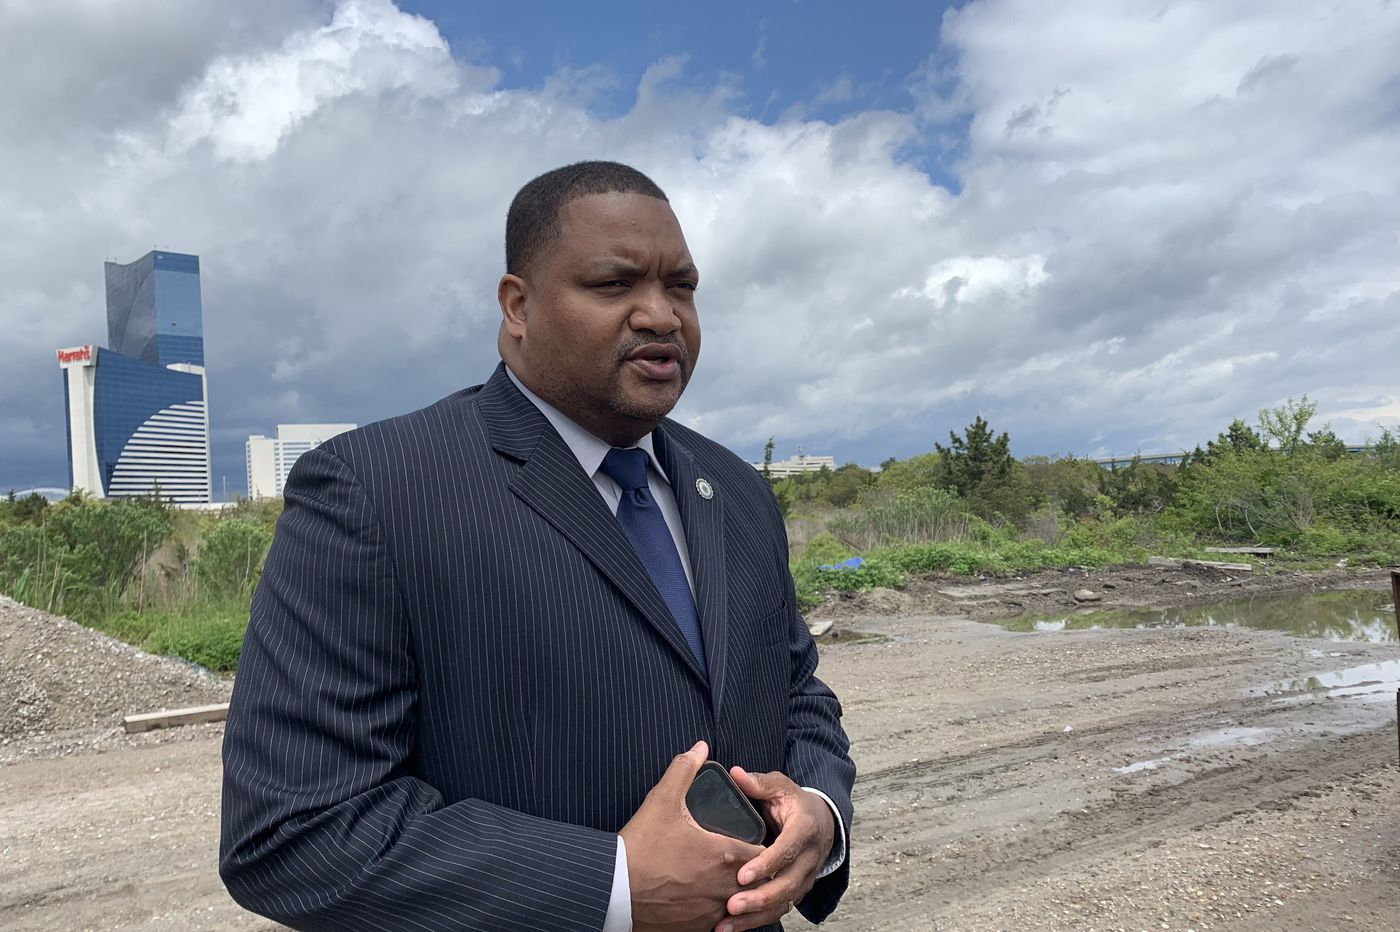 MGM Resorts partnering to build luxury Atlantic City housing on land long targeted for a casino